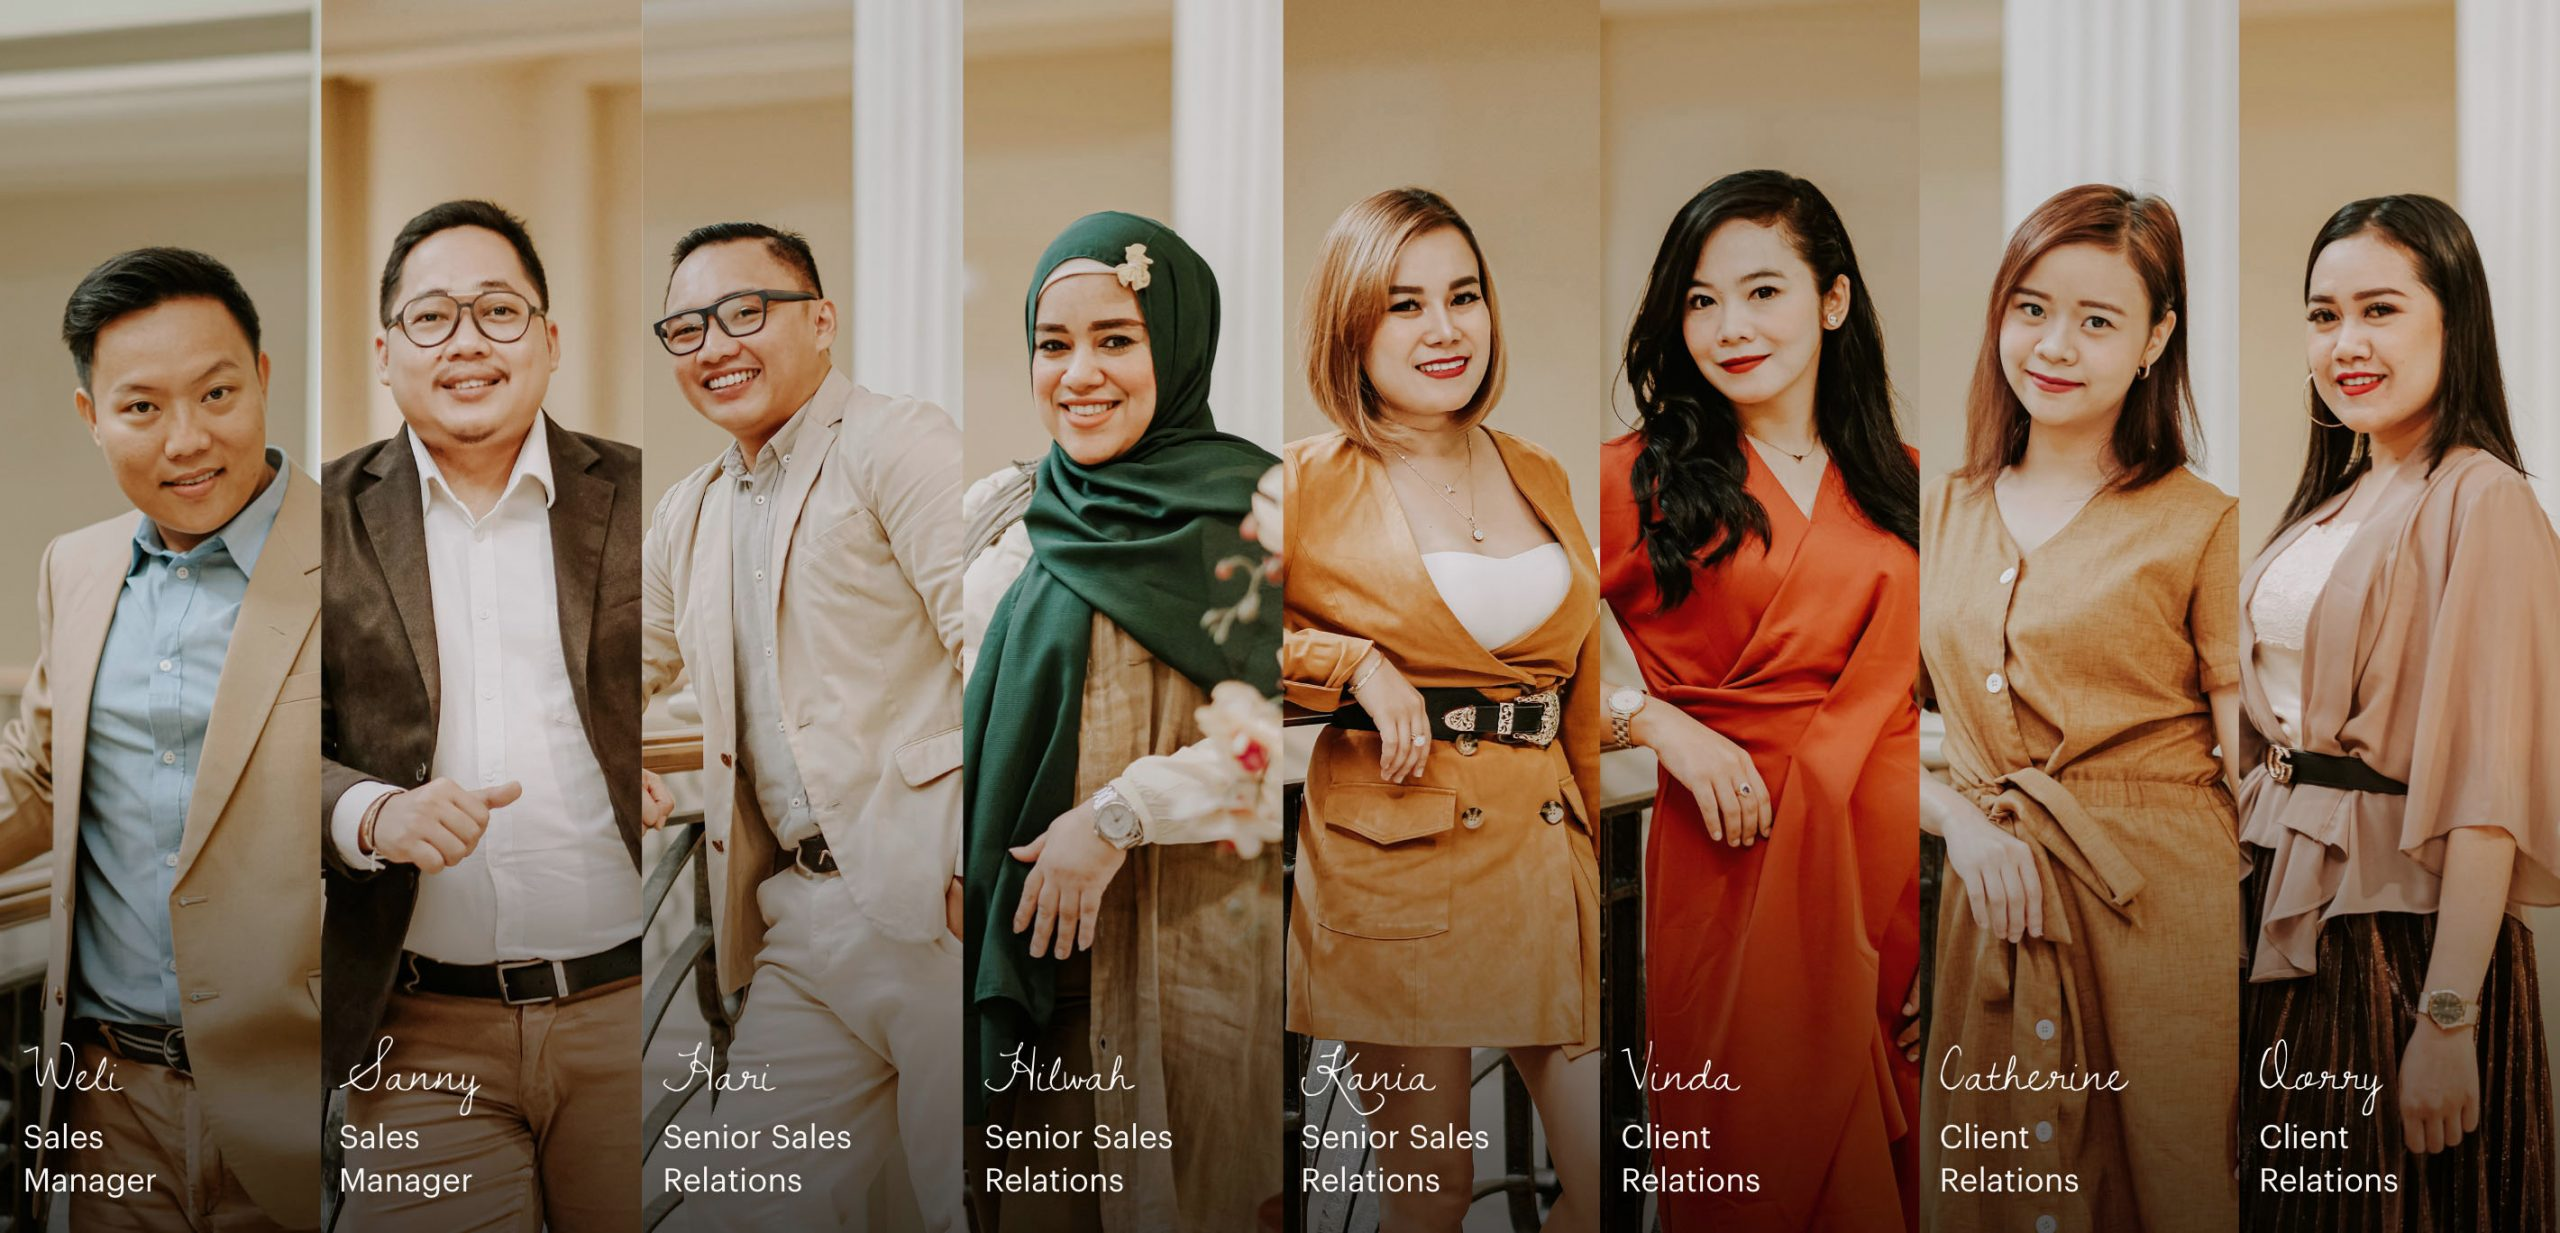 Sales and Client Relations - Tiara Hana Indonesia